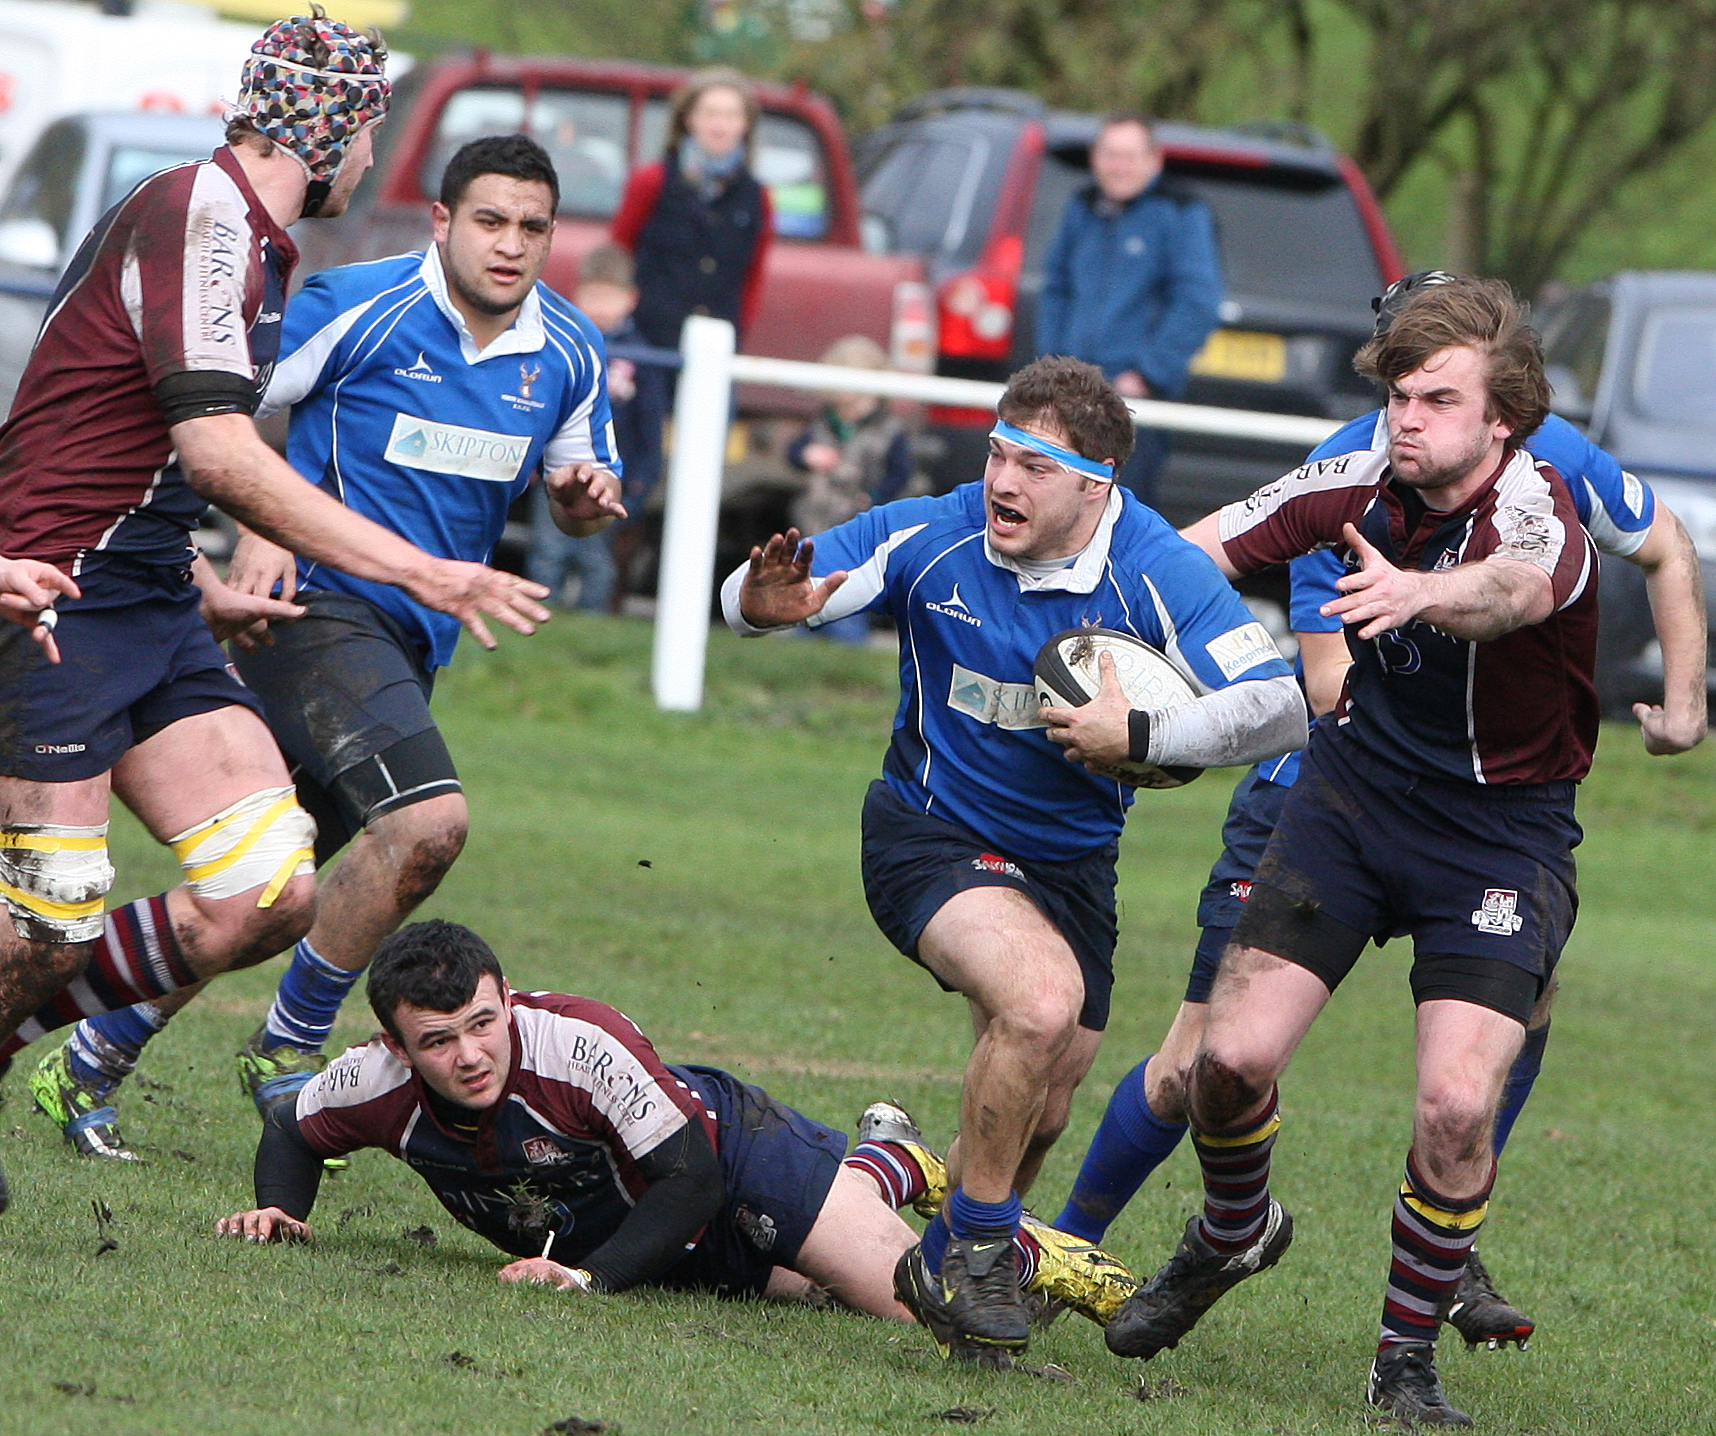 Matt Speres was injured early in North Ribblesdale's defeat